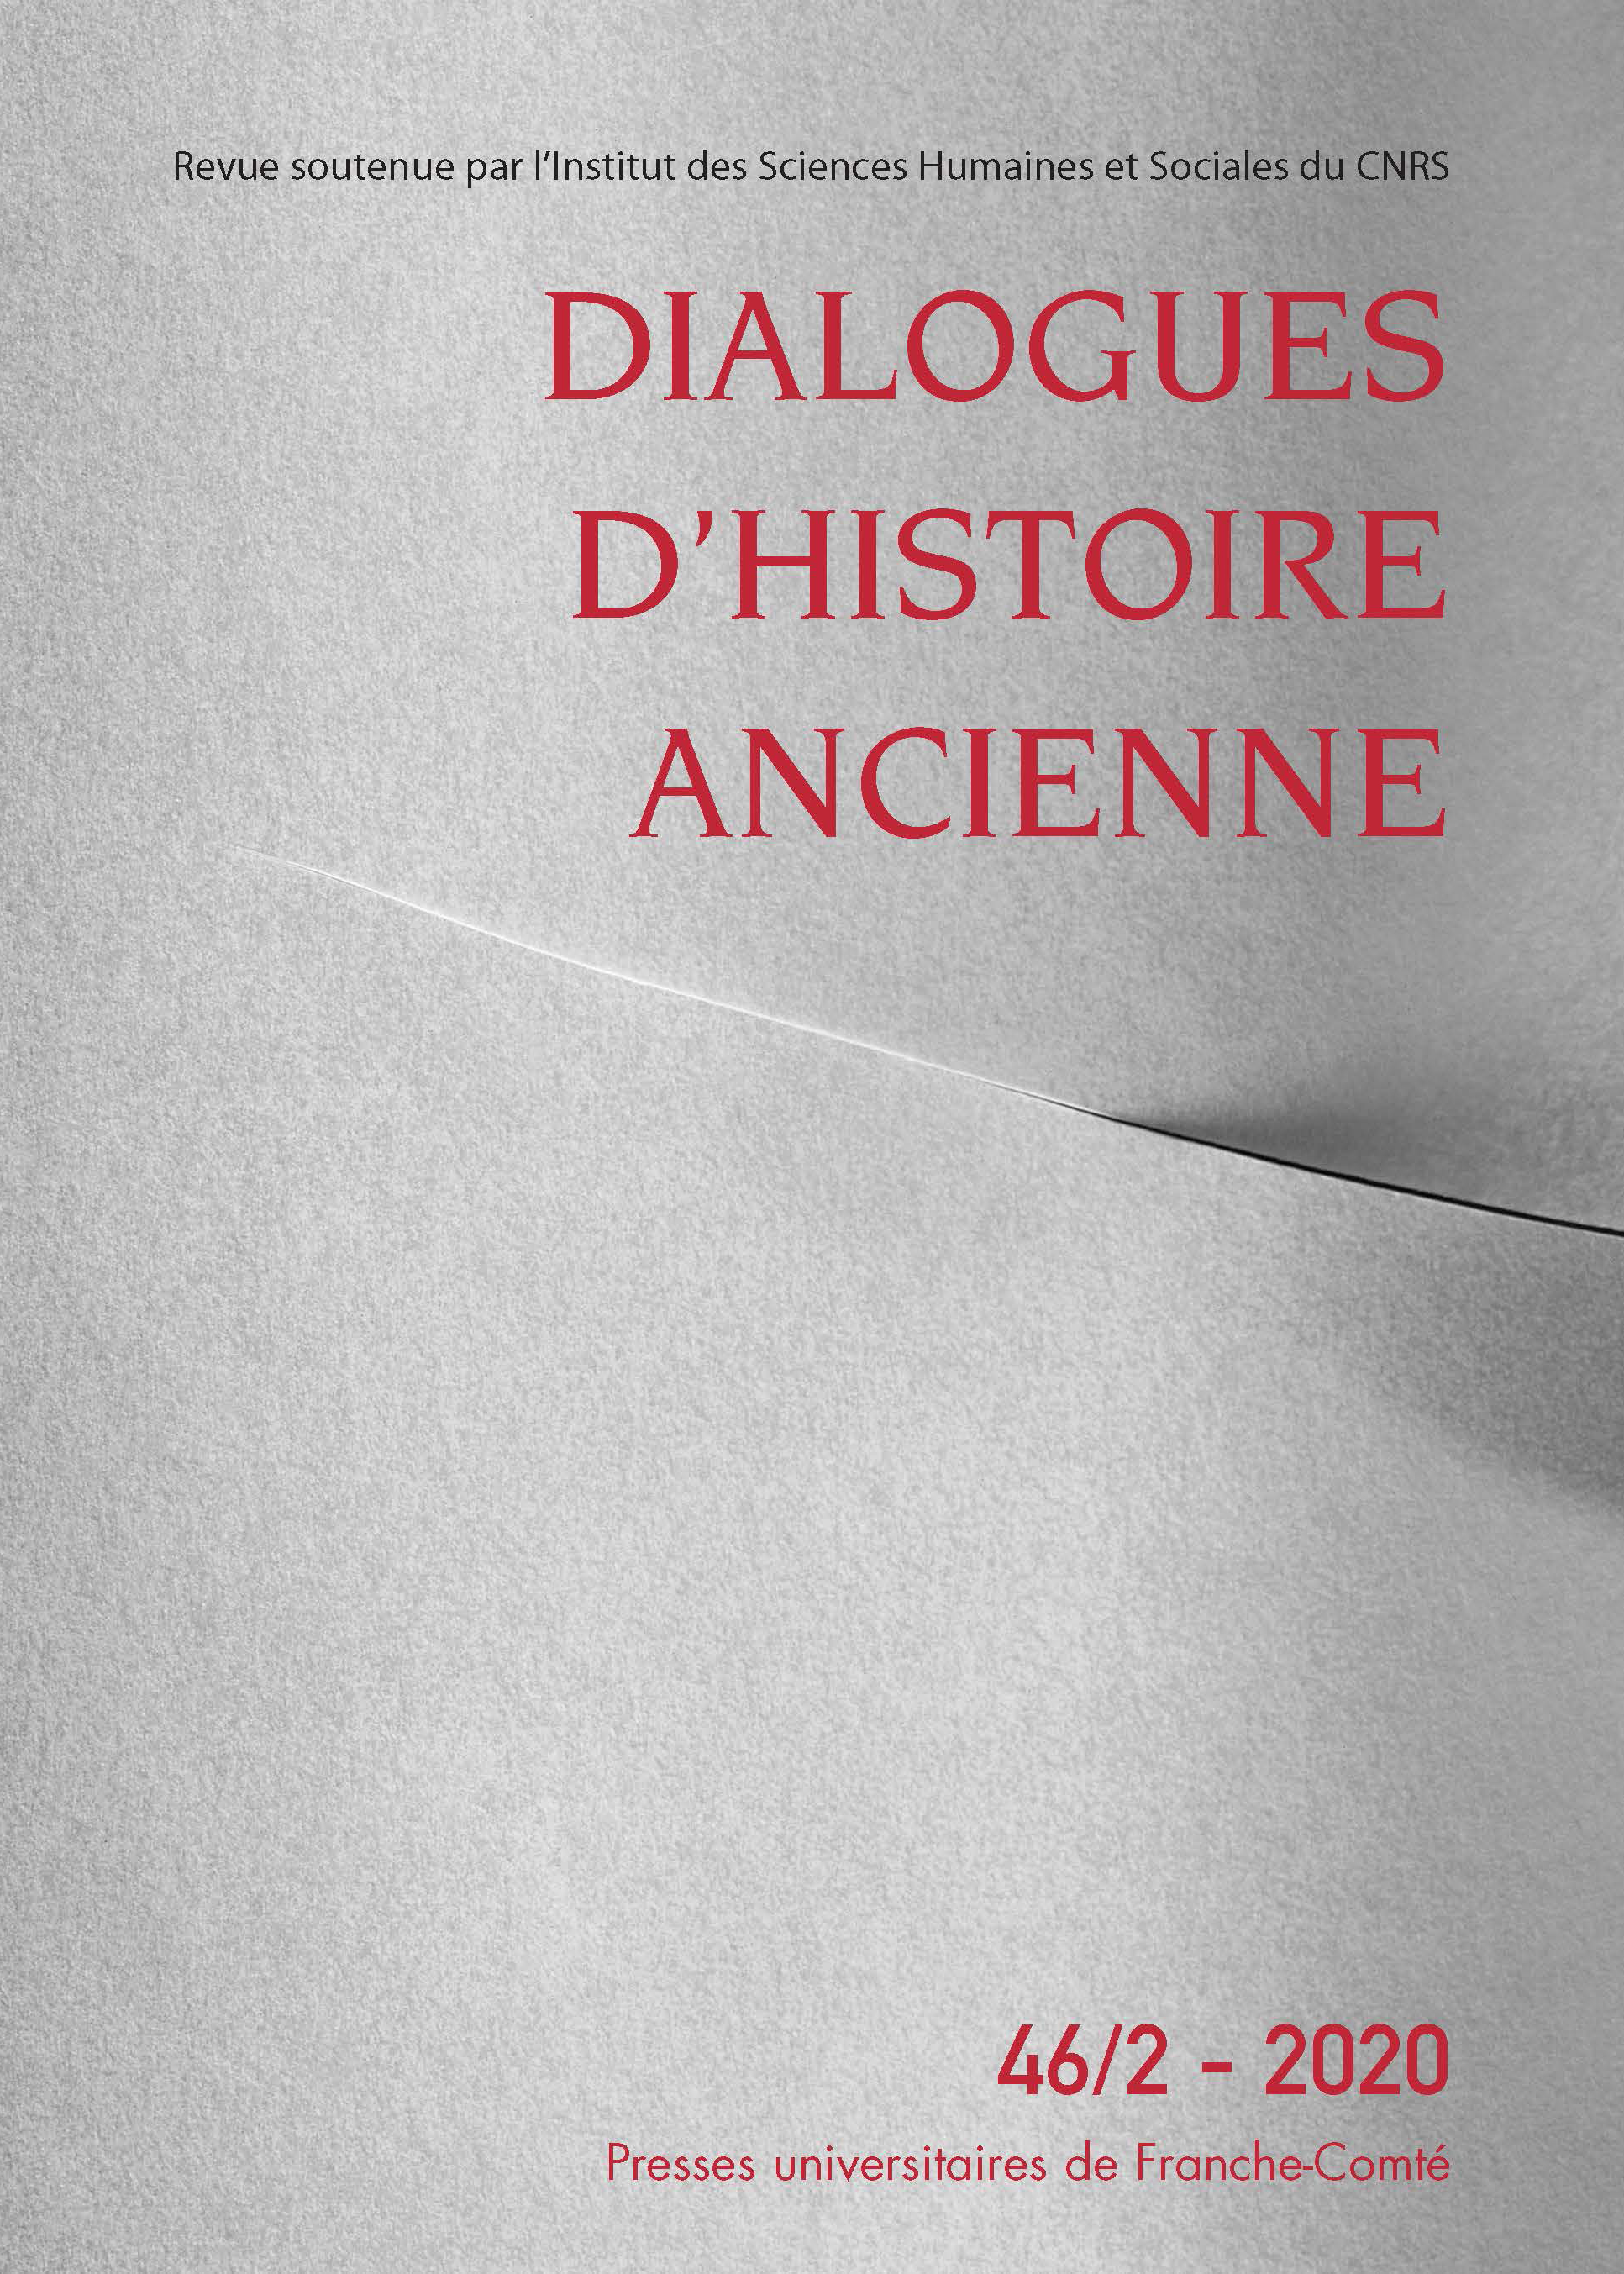 dialogues_histoire_ancienne_2020._462.jpg